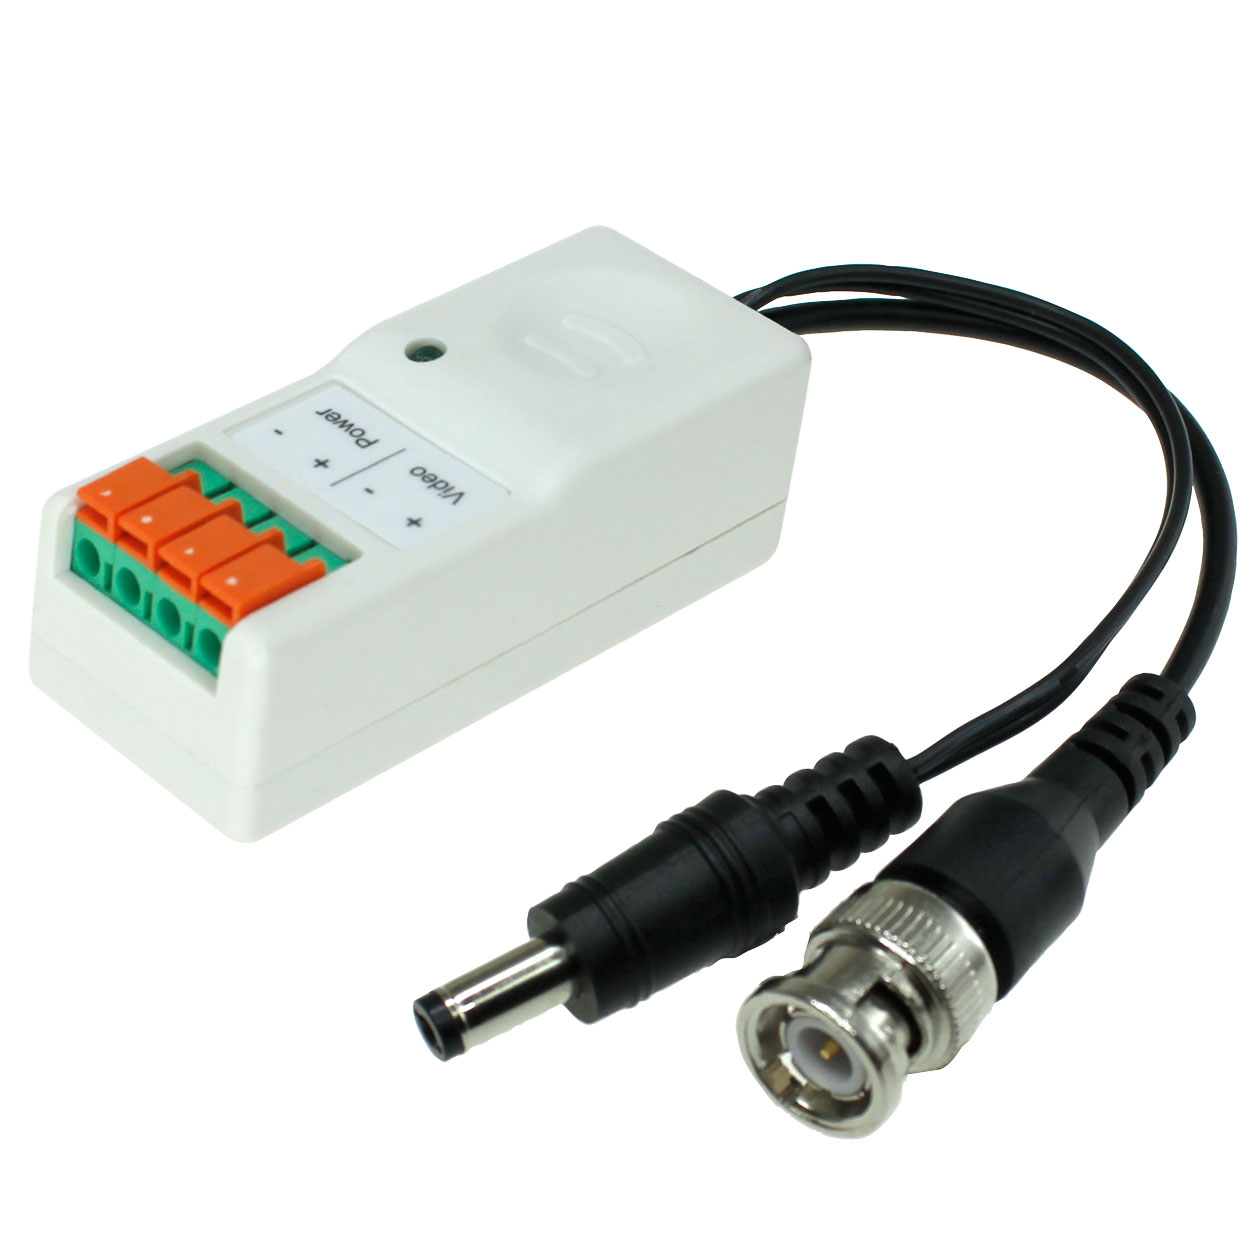 hight resolution of hd active video balun terminal type for hd tvi hdcvi ahd cvbs cameras power converted camera side pi manufacturing